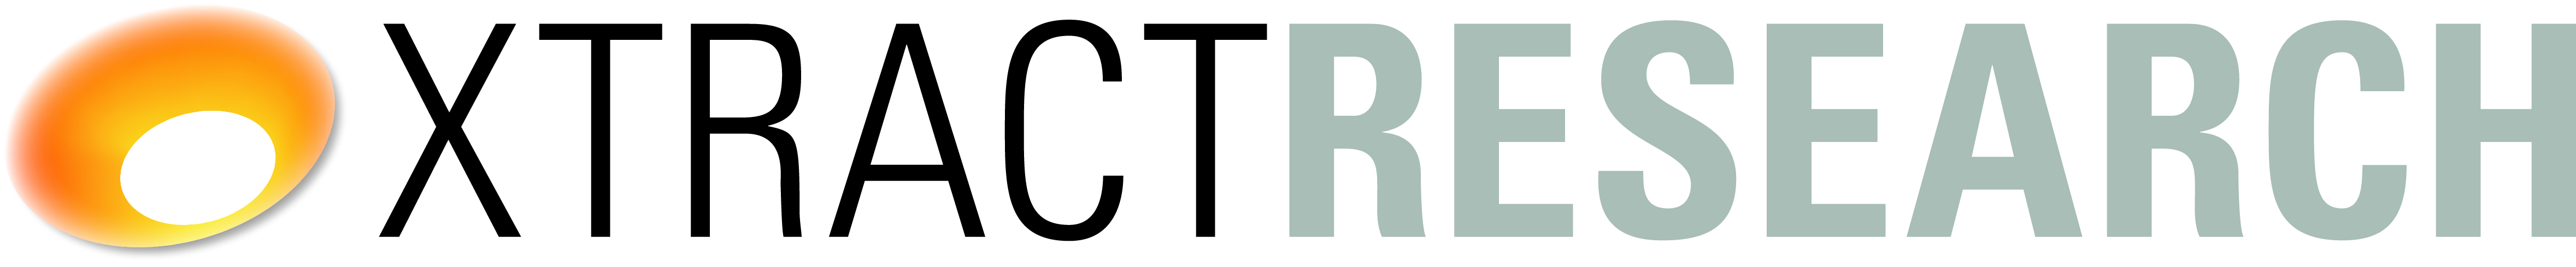 Xtract Research logo